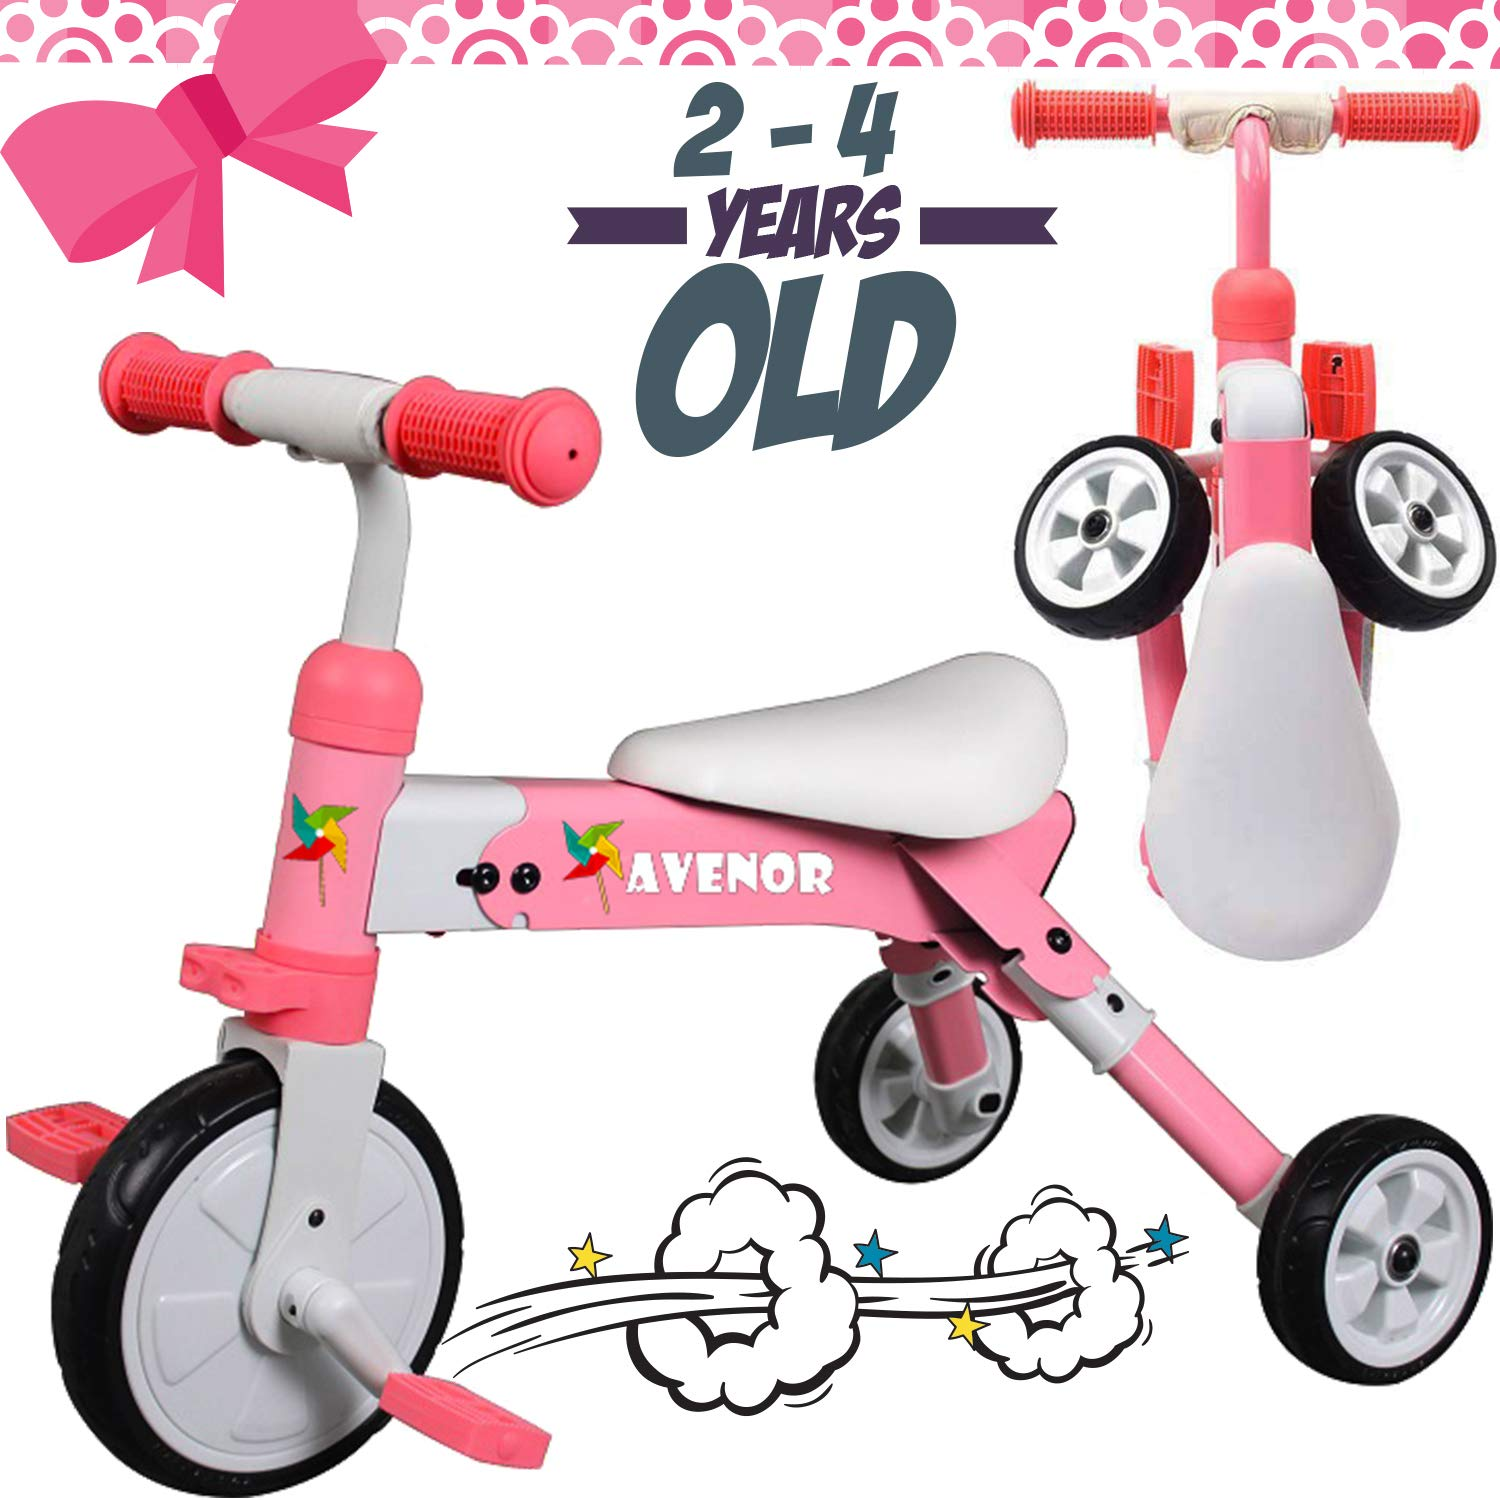 2 in 1 Tricycles Ages 2-4 Years Old Baby Tricycle Perfect As Folding